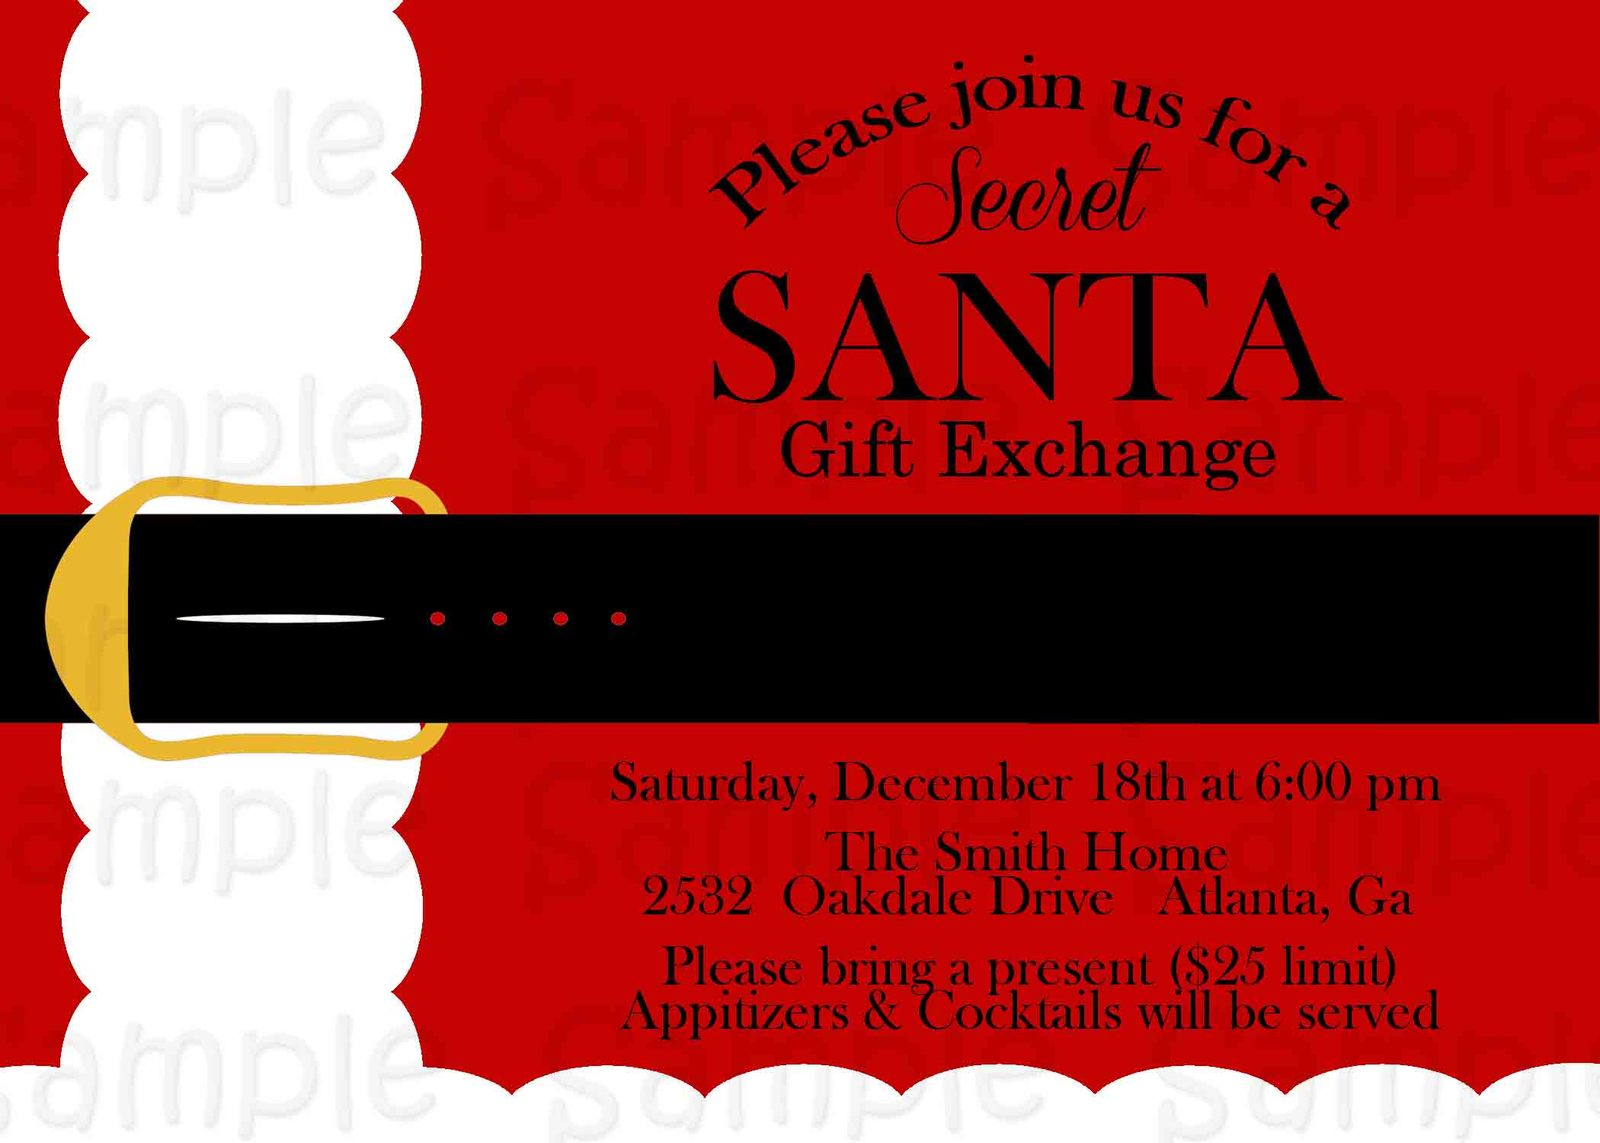 Fine Holiday Office Party Invitation Mold - Invitations and ...